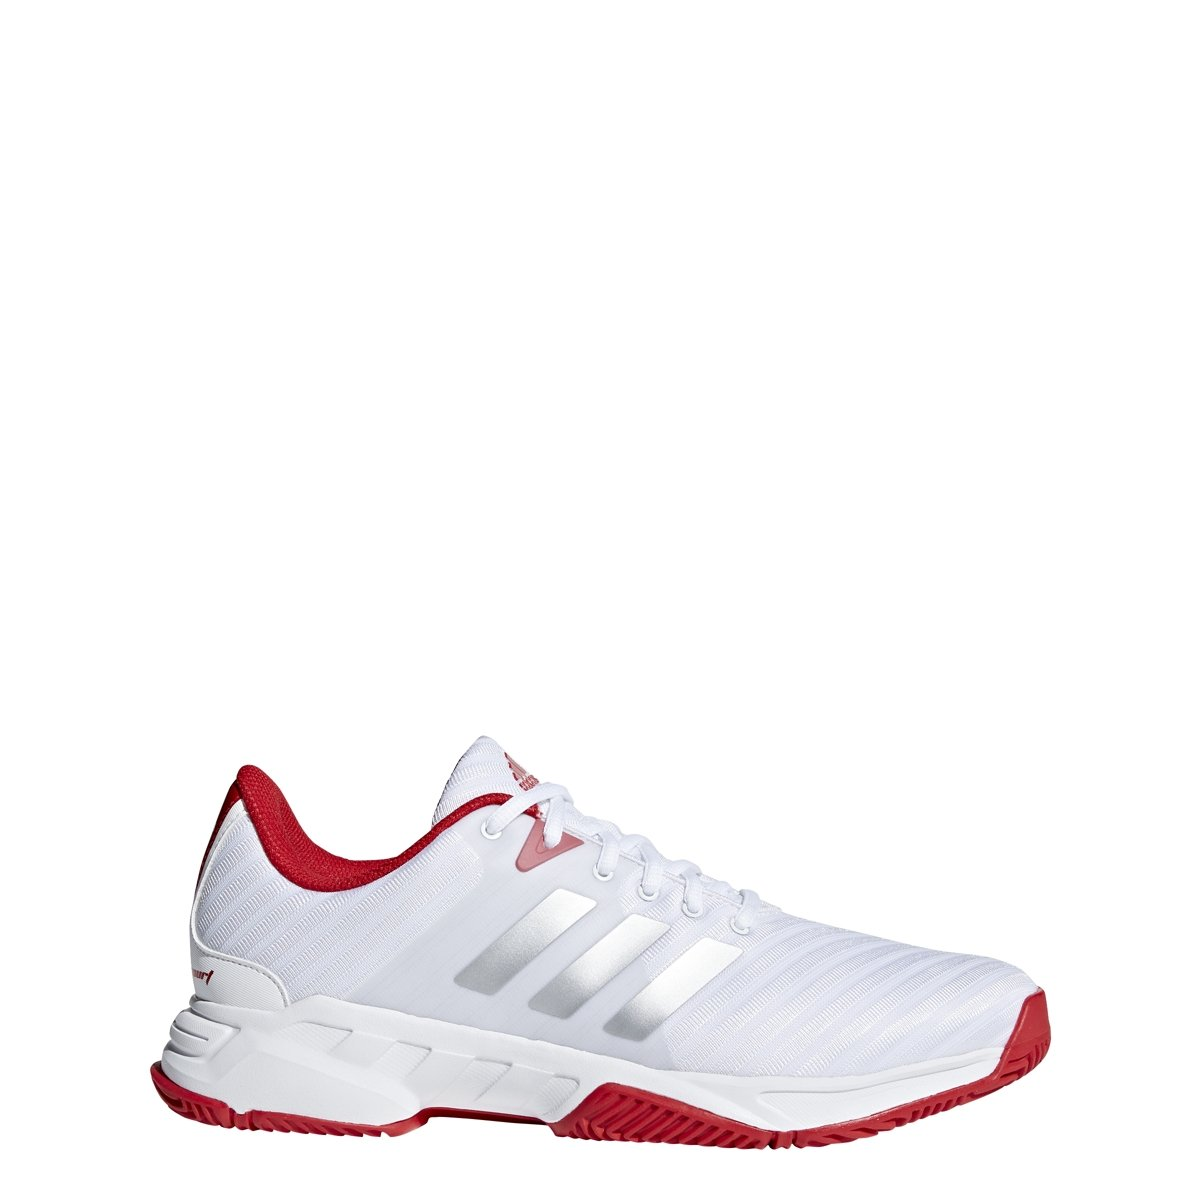 adidas Performance Men's Barricade Court 3 Tennis Shoe, White/Matte Silver/Scarlet, 10 M US by adidas